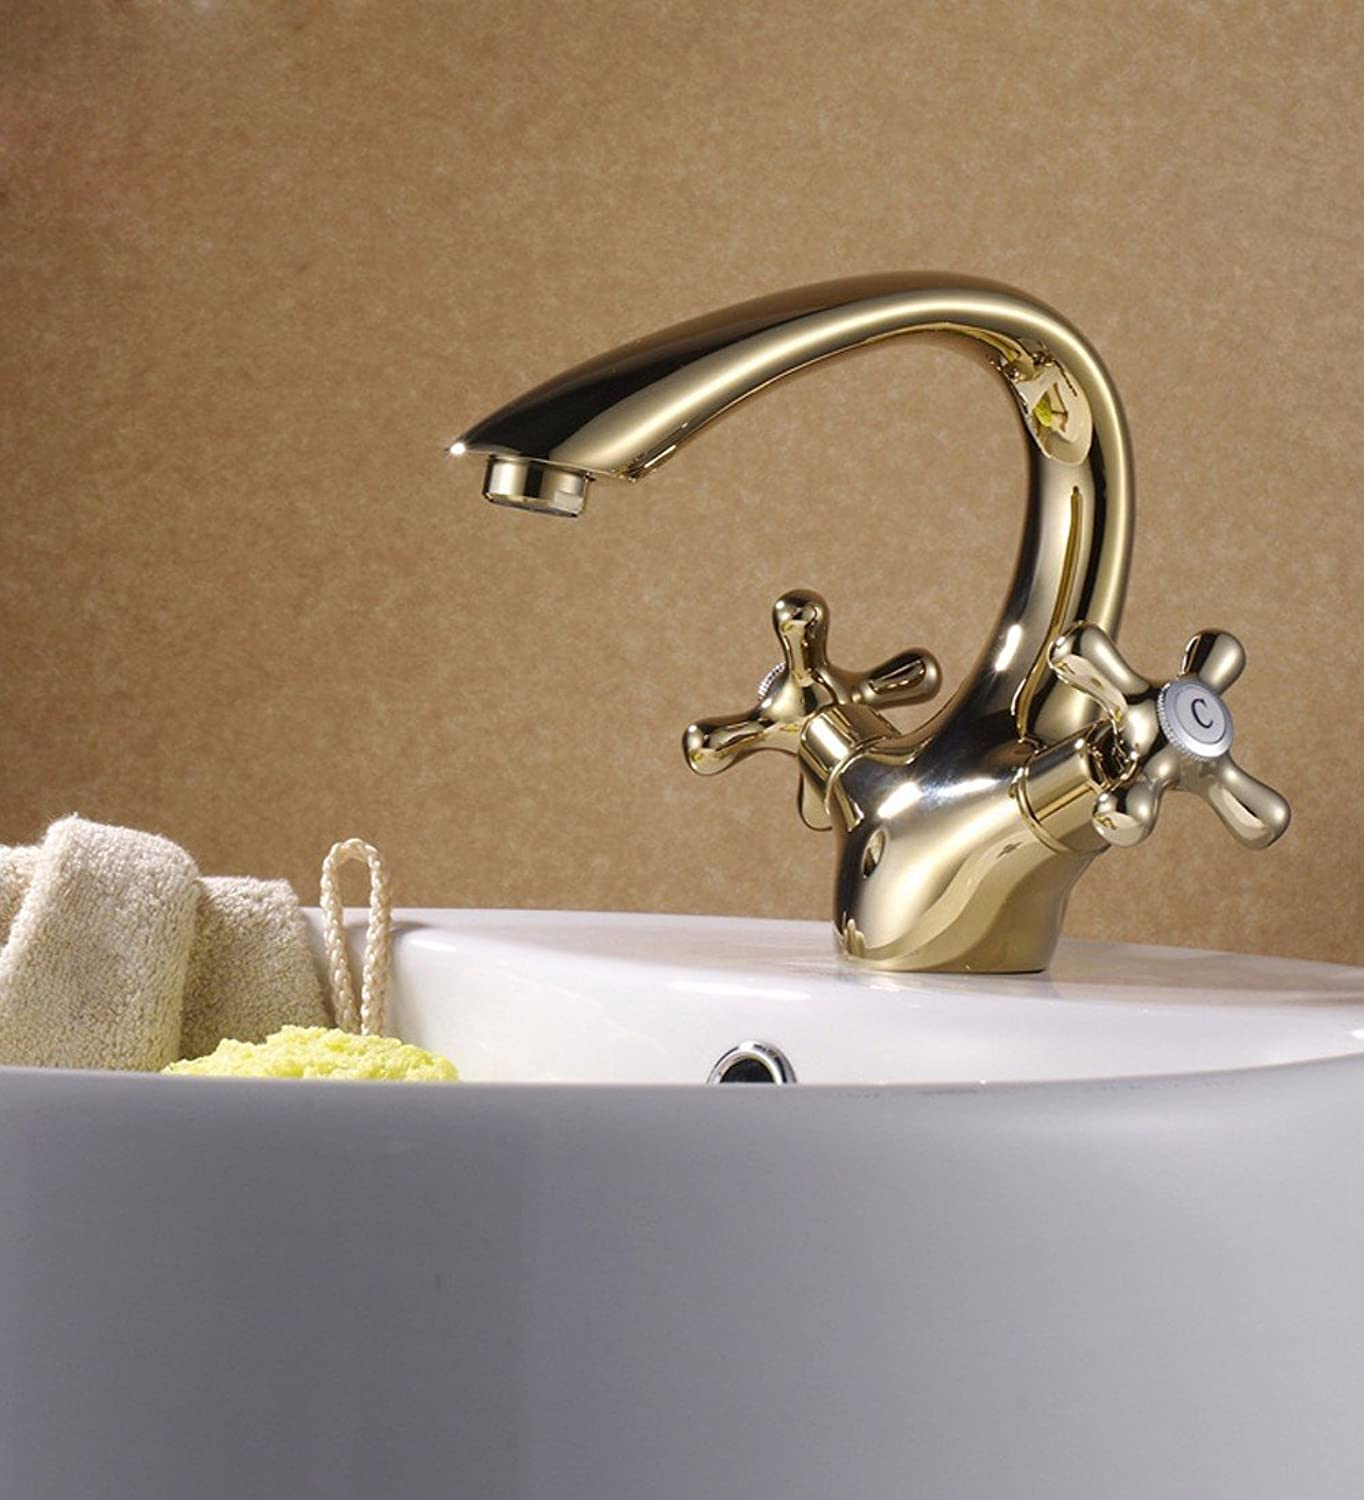 LHbox Basin Mixer Tap Bathroom Sink Faucet Basin, hot and cold continental wash-basin mixer, copper gold